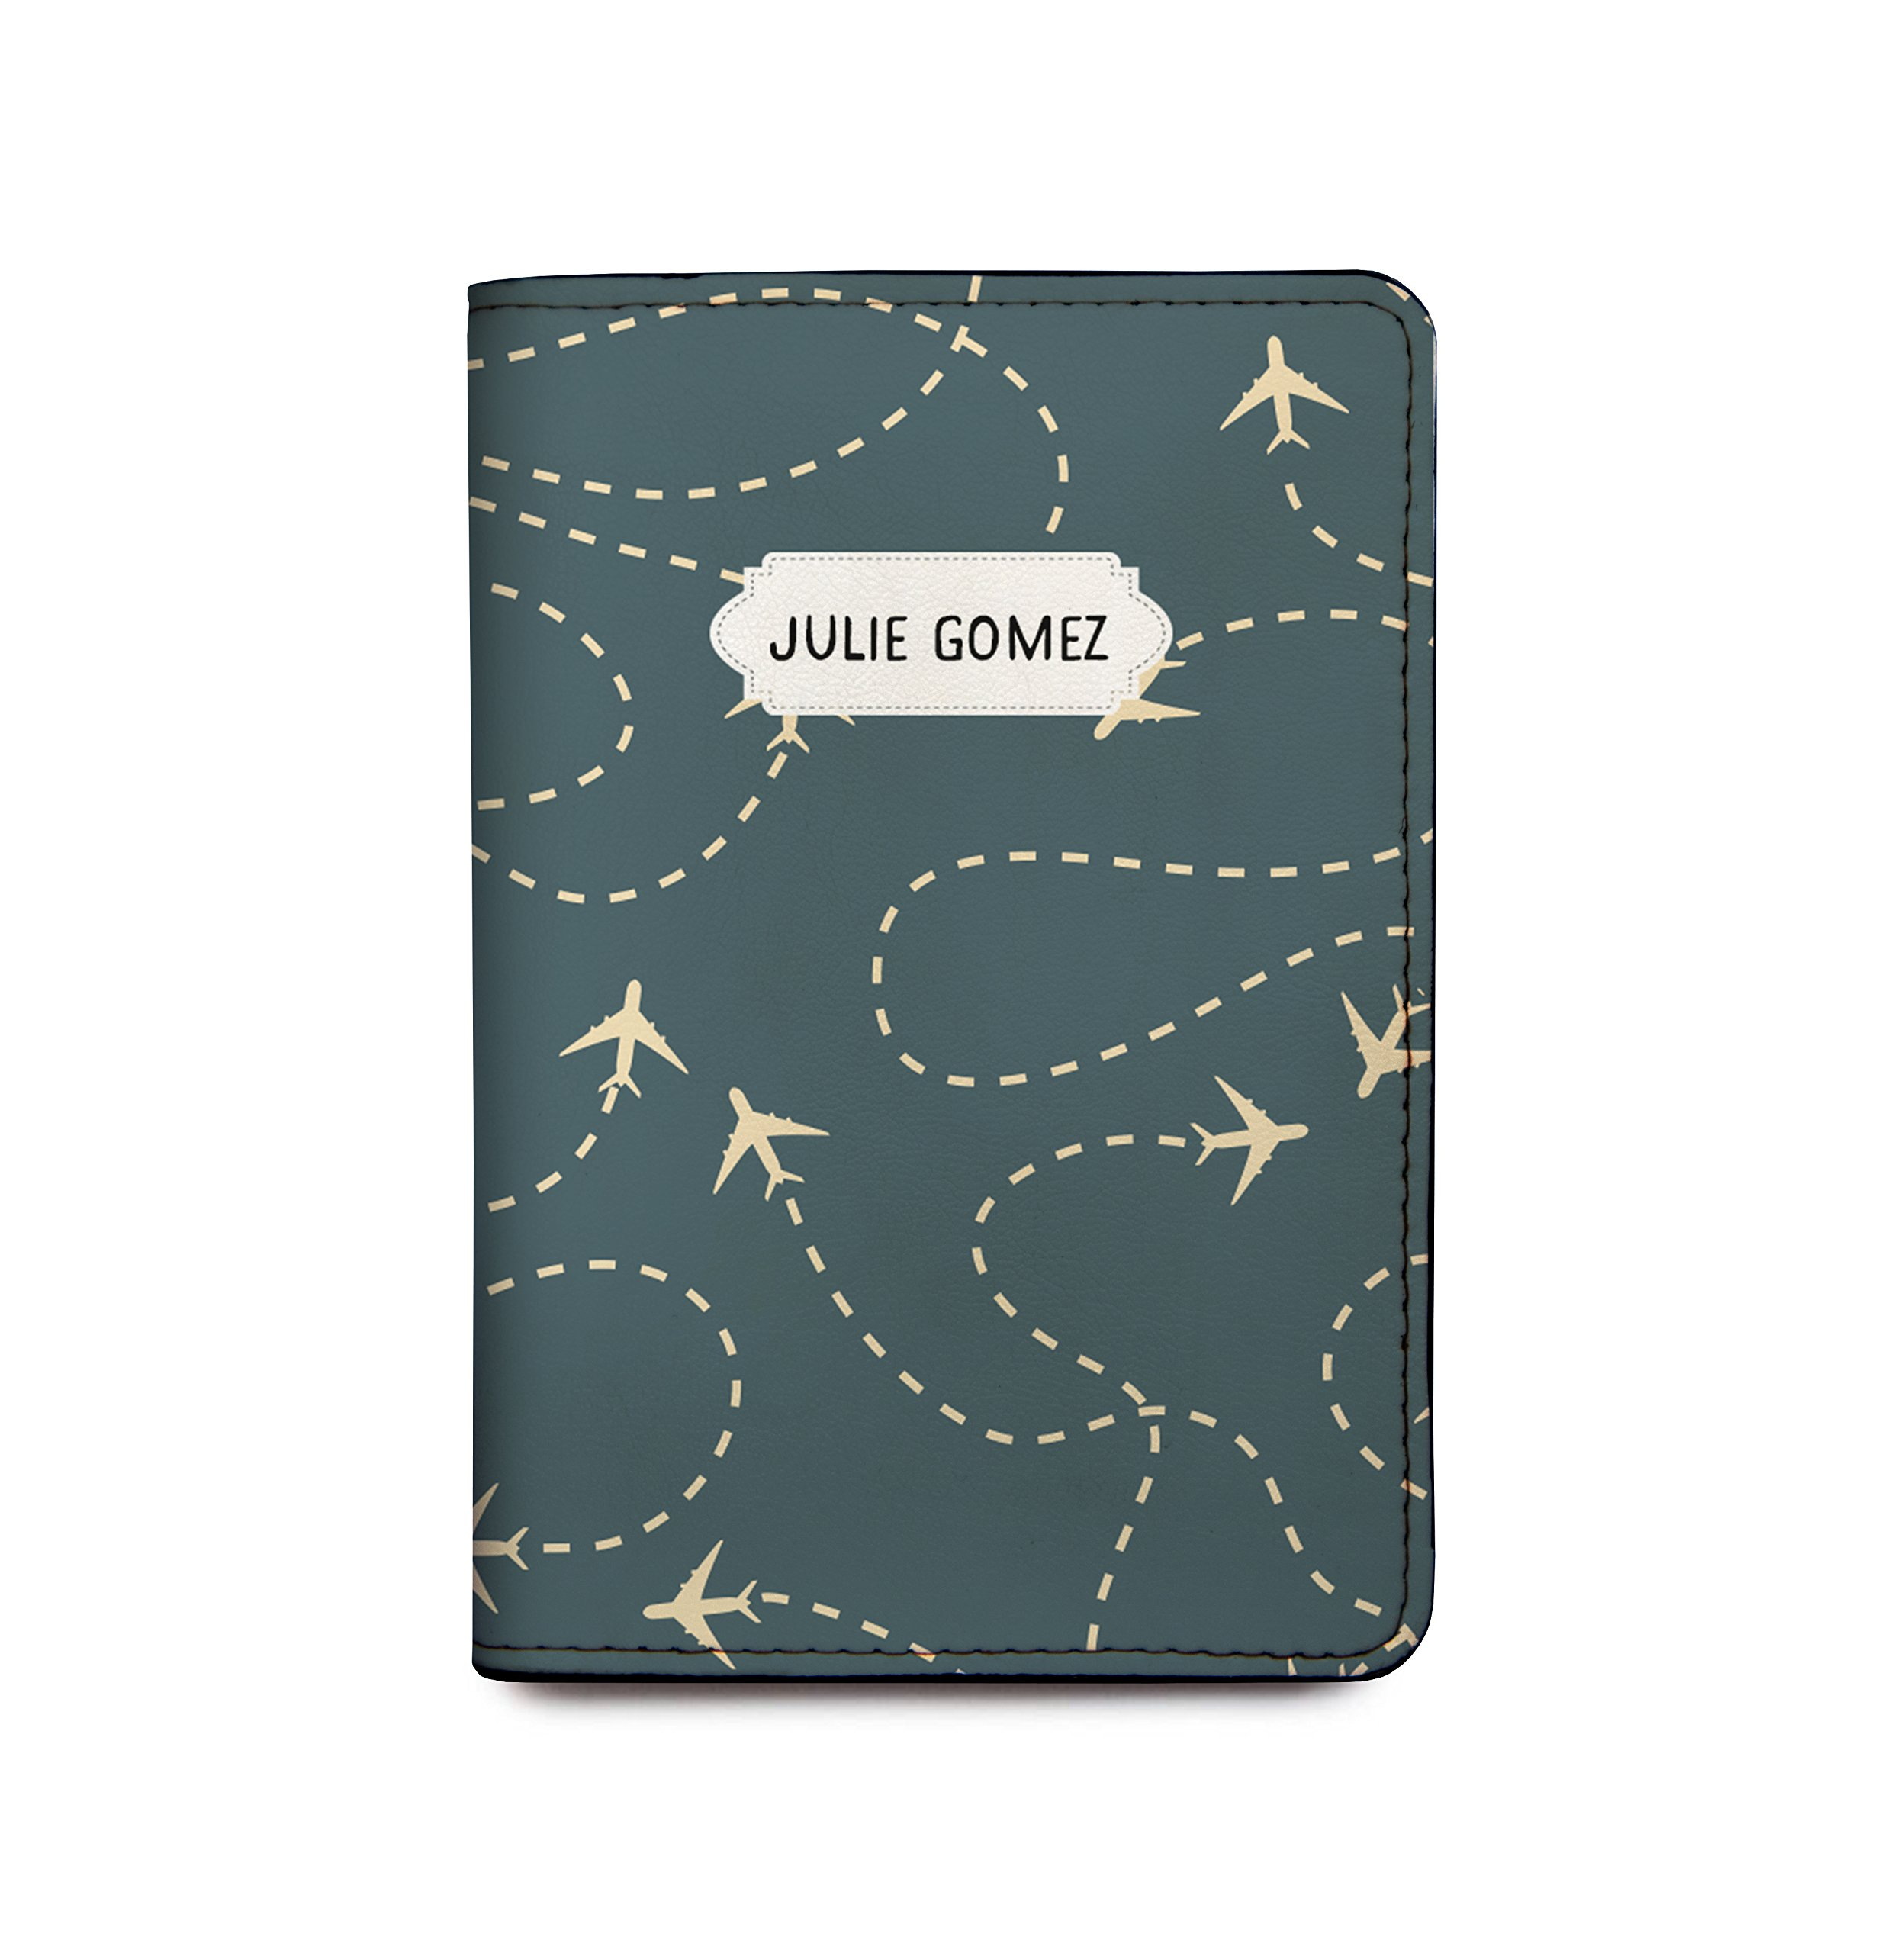 Customized RFID Blocking Leather Passport Holder Airplanes by With Love From Julie (Image #1)